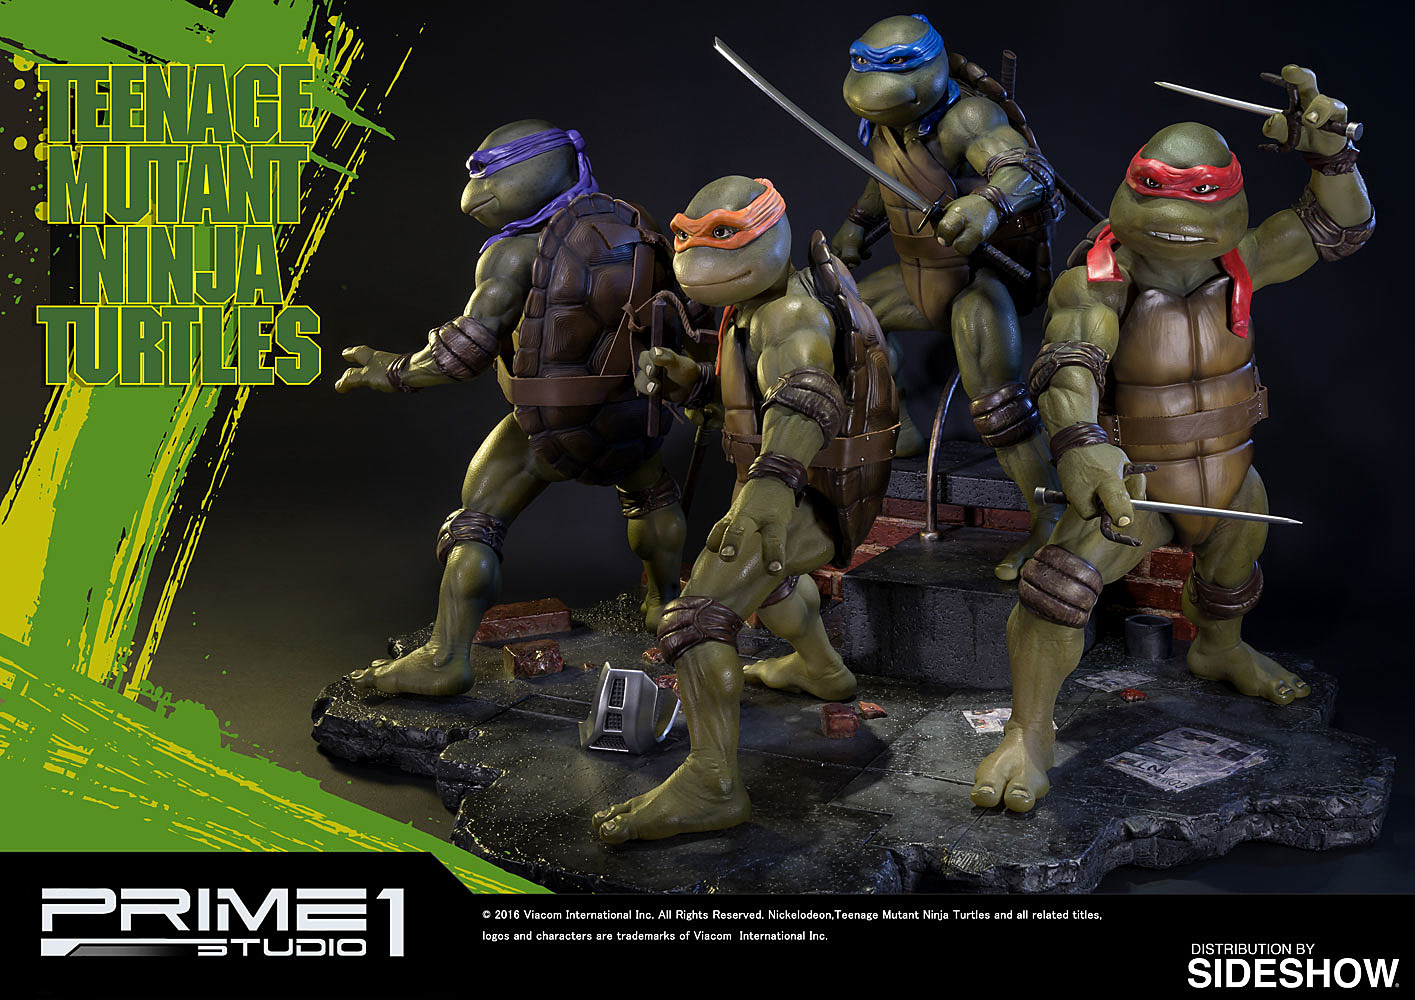 Teenage Mutant Ninja Turtles Toys 1 : Prime s teenage mutant ninja turtles will cost you a